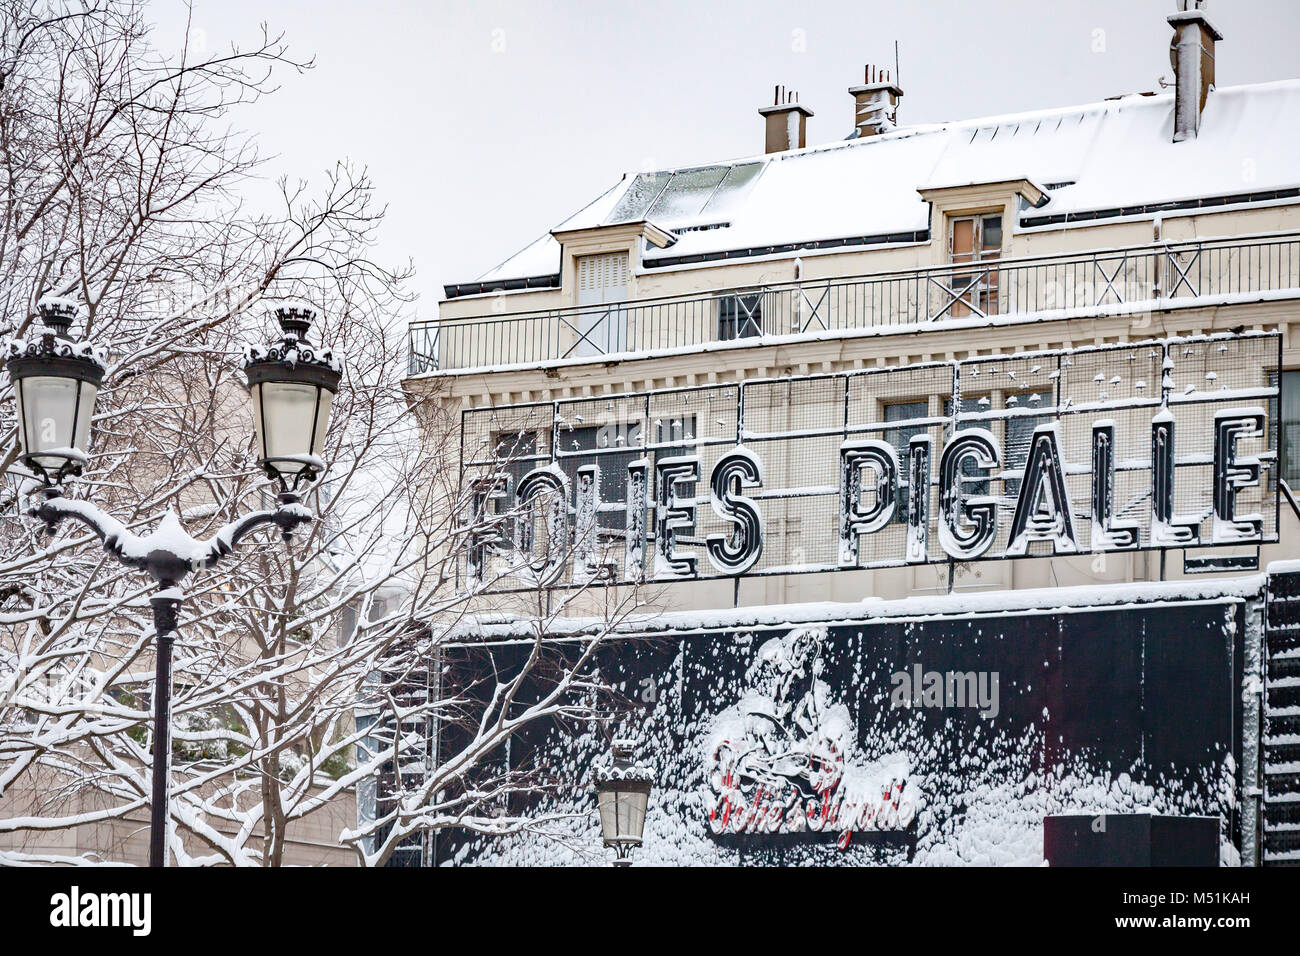 Snow covered Folies Pigalle in Paris France - Stock Image